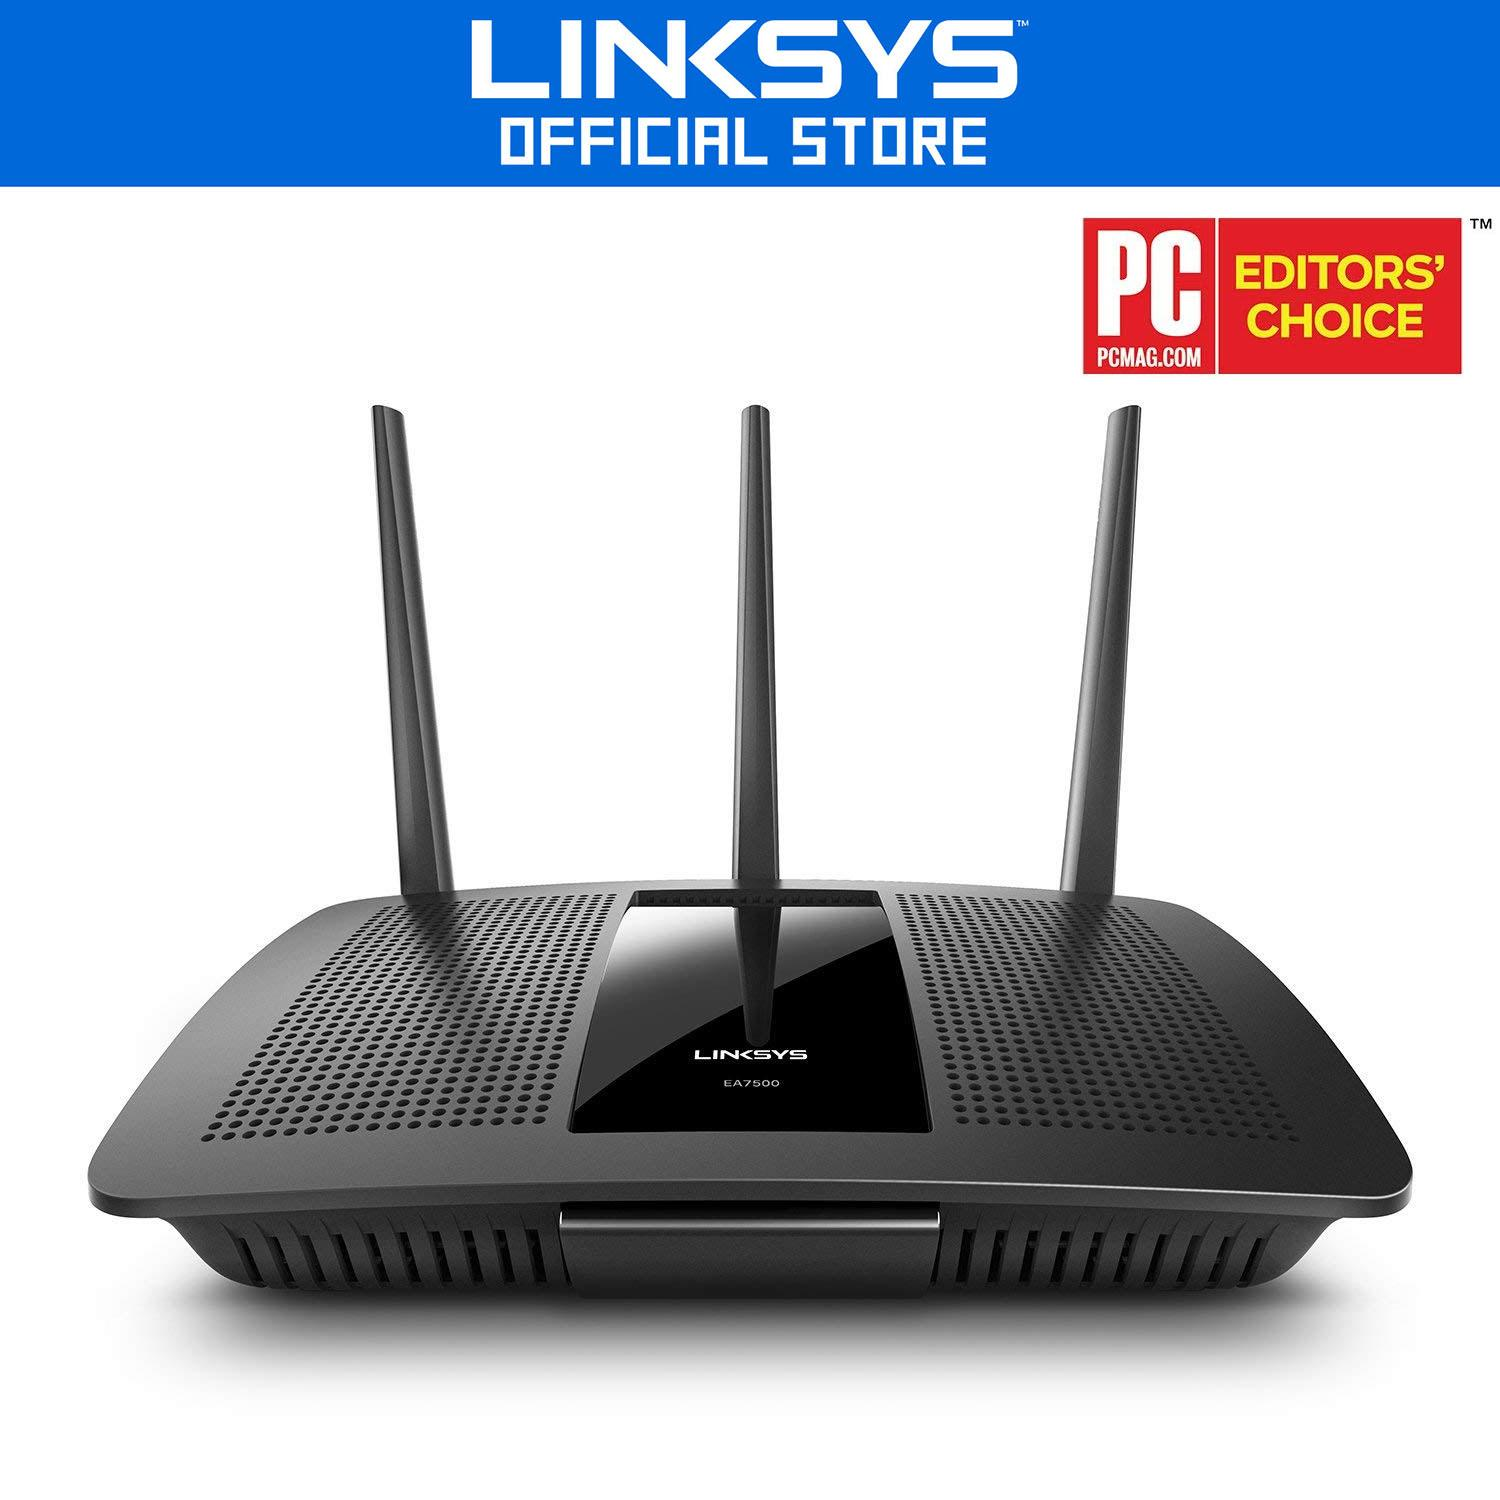 Linksys Philippines Price List Internet Routers Wifi Cisco E1000 Wireless N Router Ac1900 Dual Band Works With Amazon Alexa Max Stream Ea7500